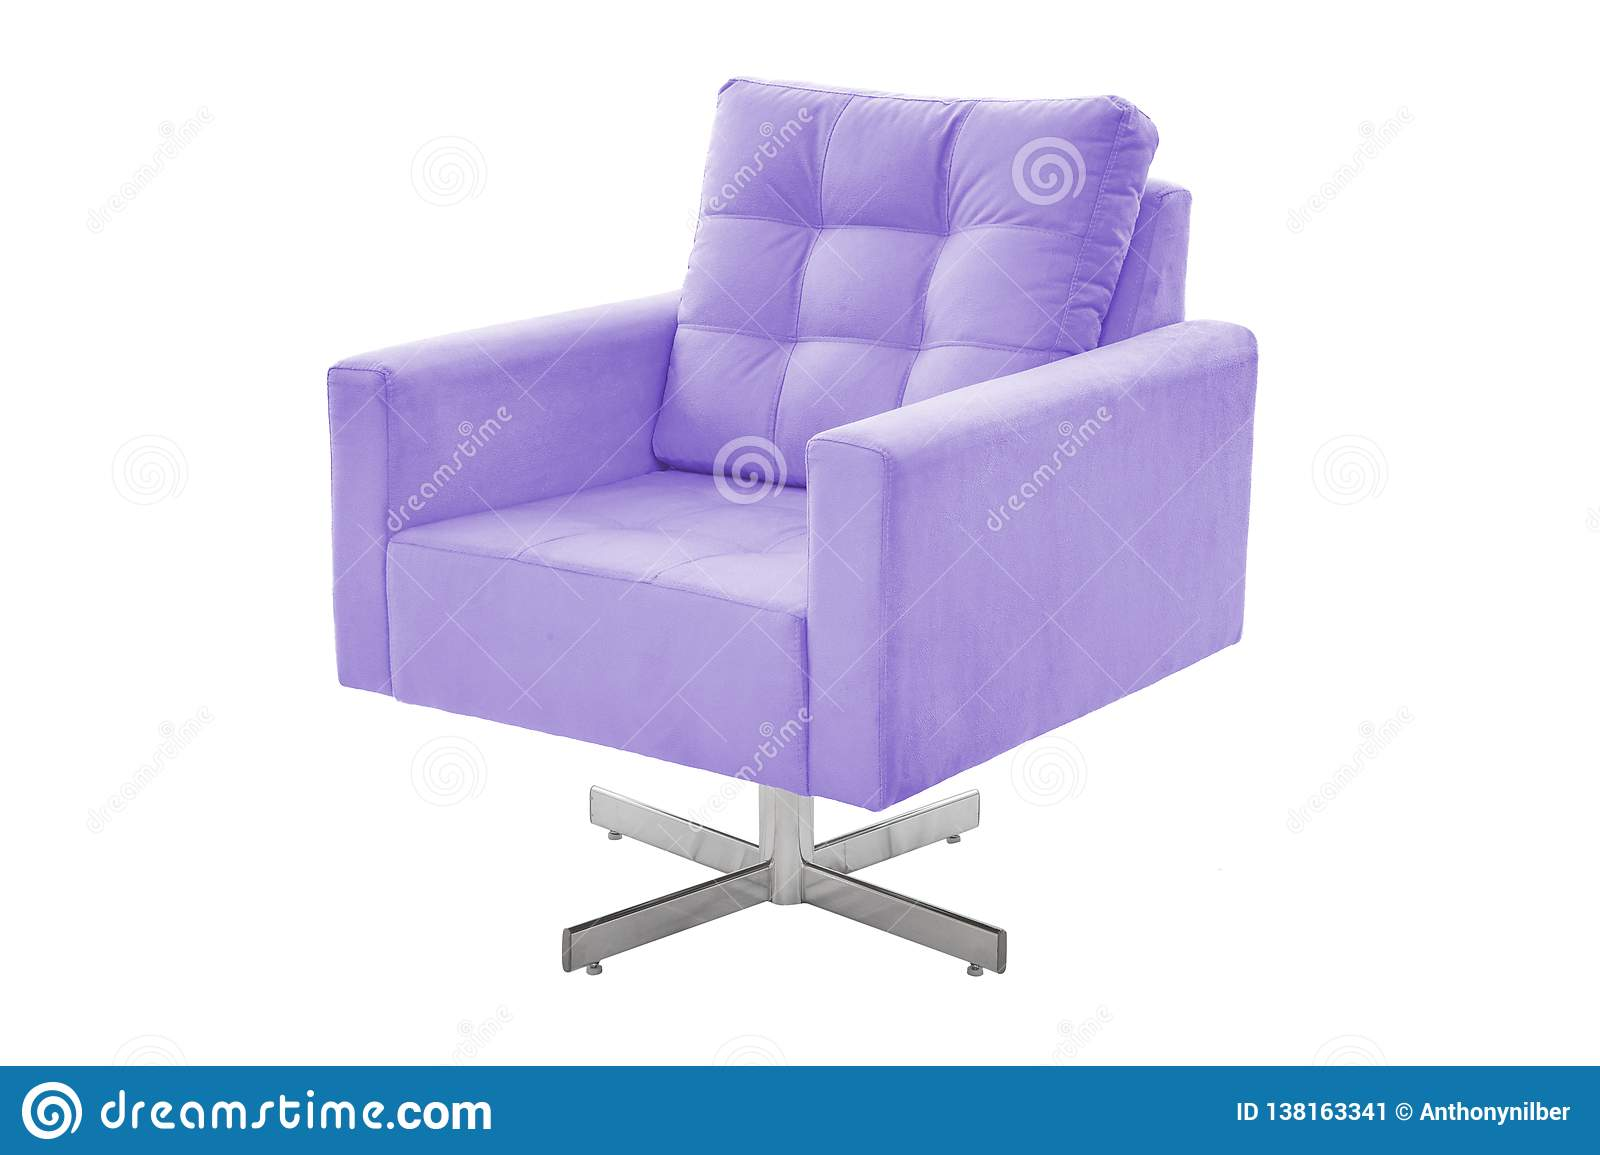 Color fabric and wood armchair modern designer